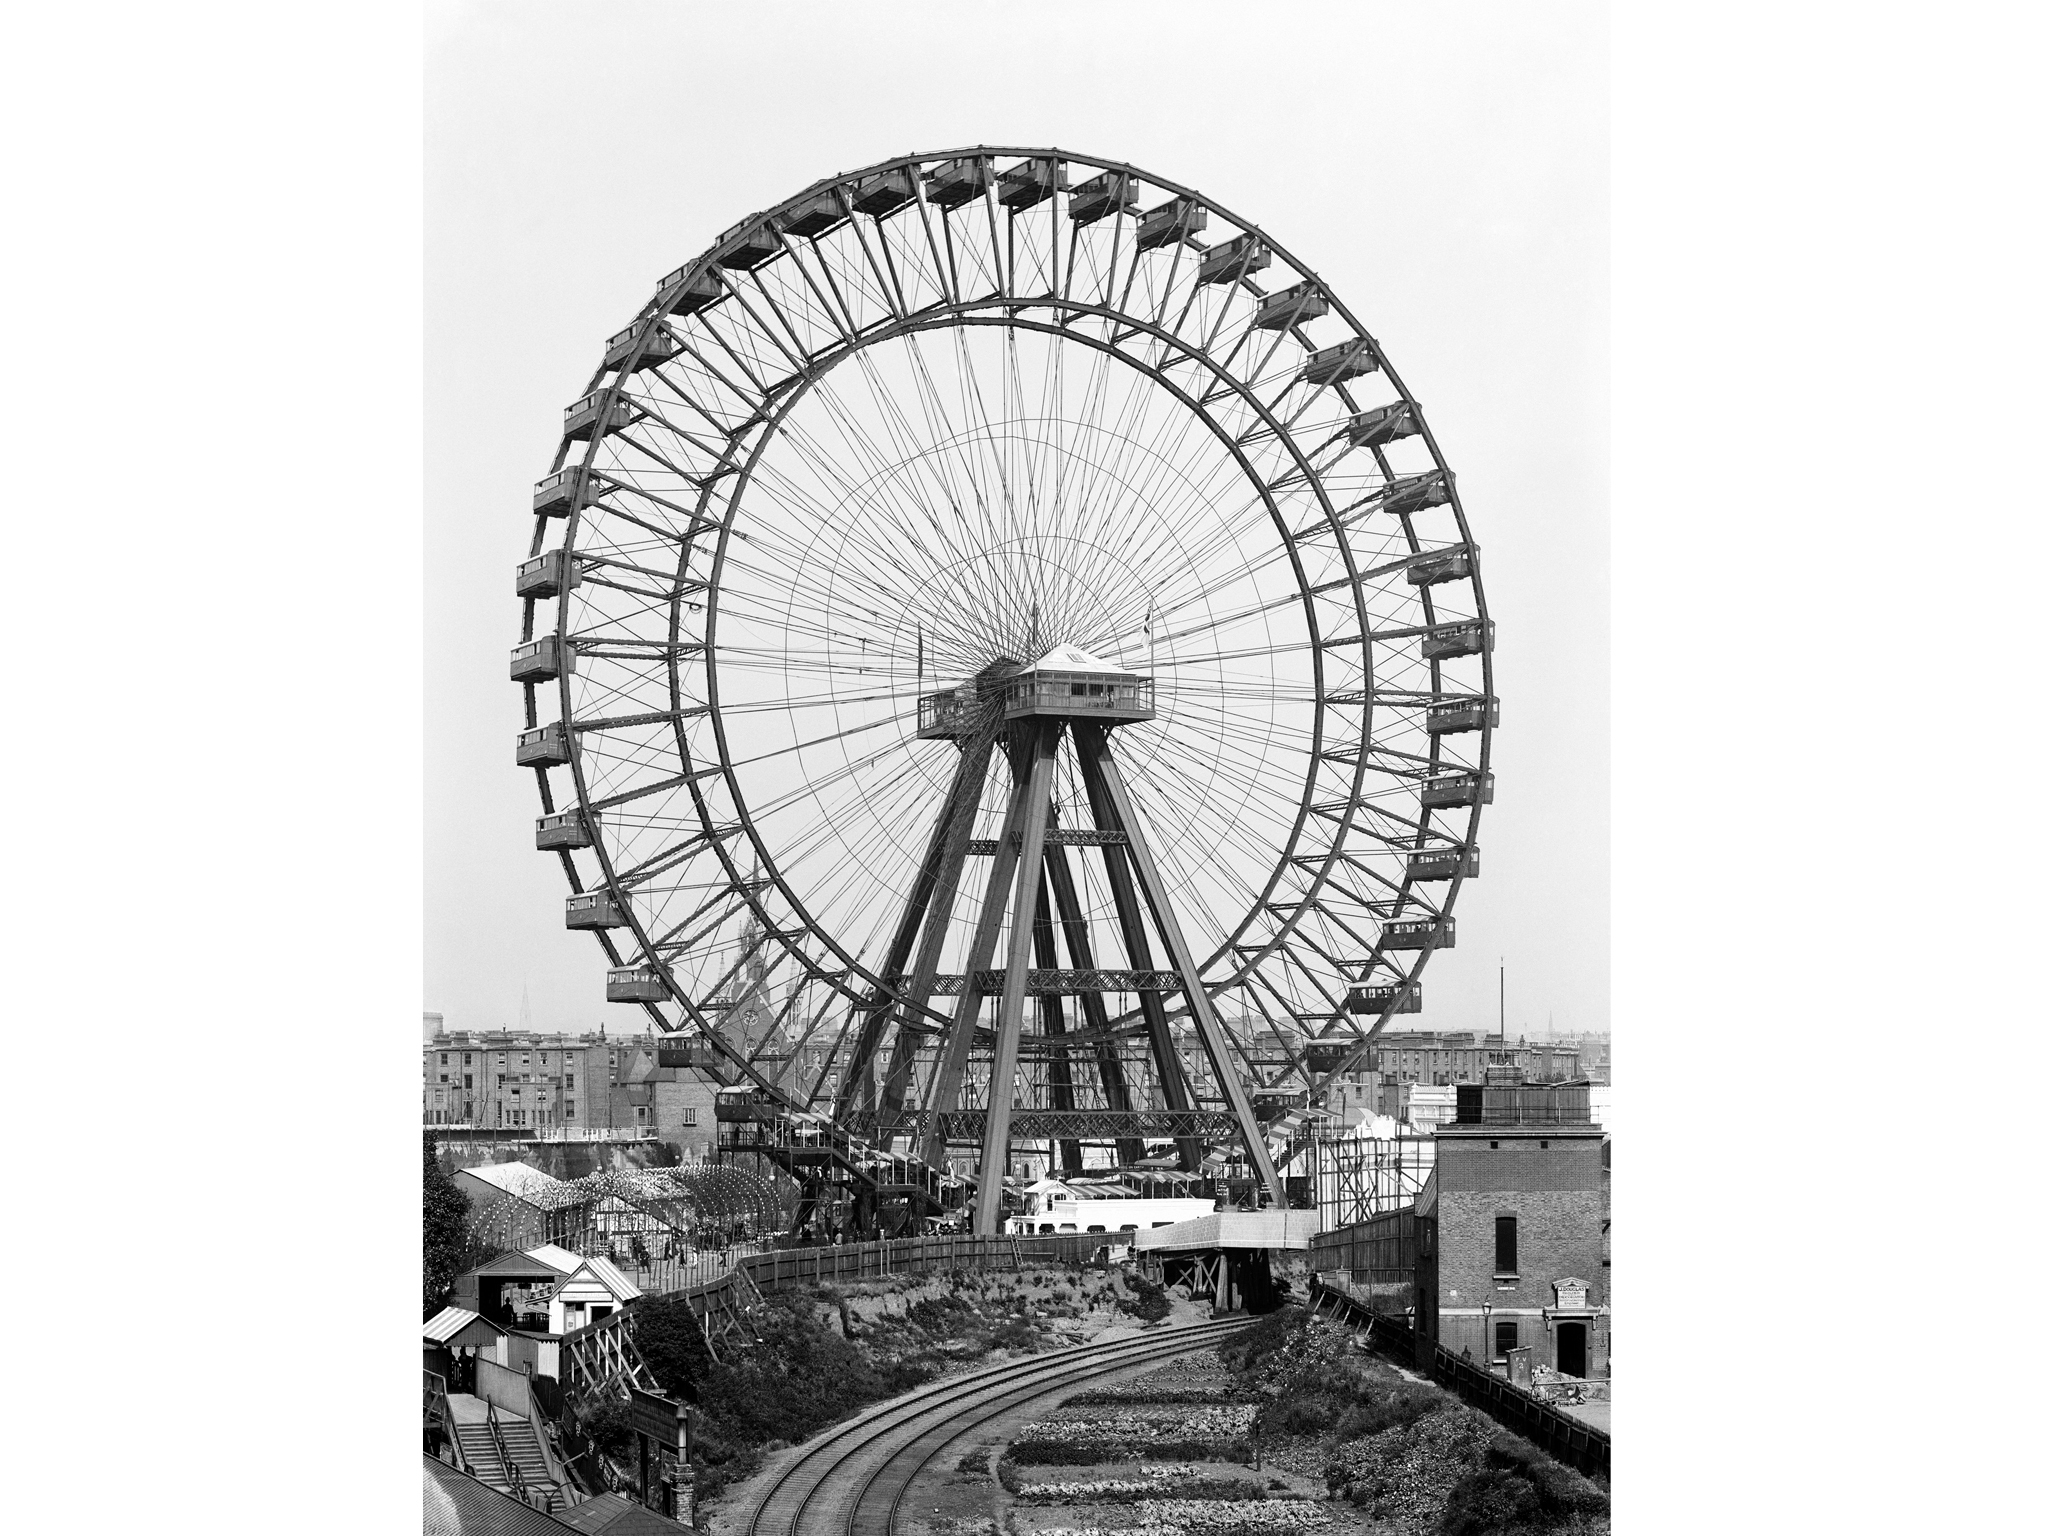 Lost London: The Great Wheel